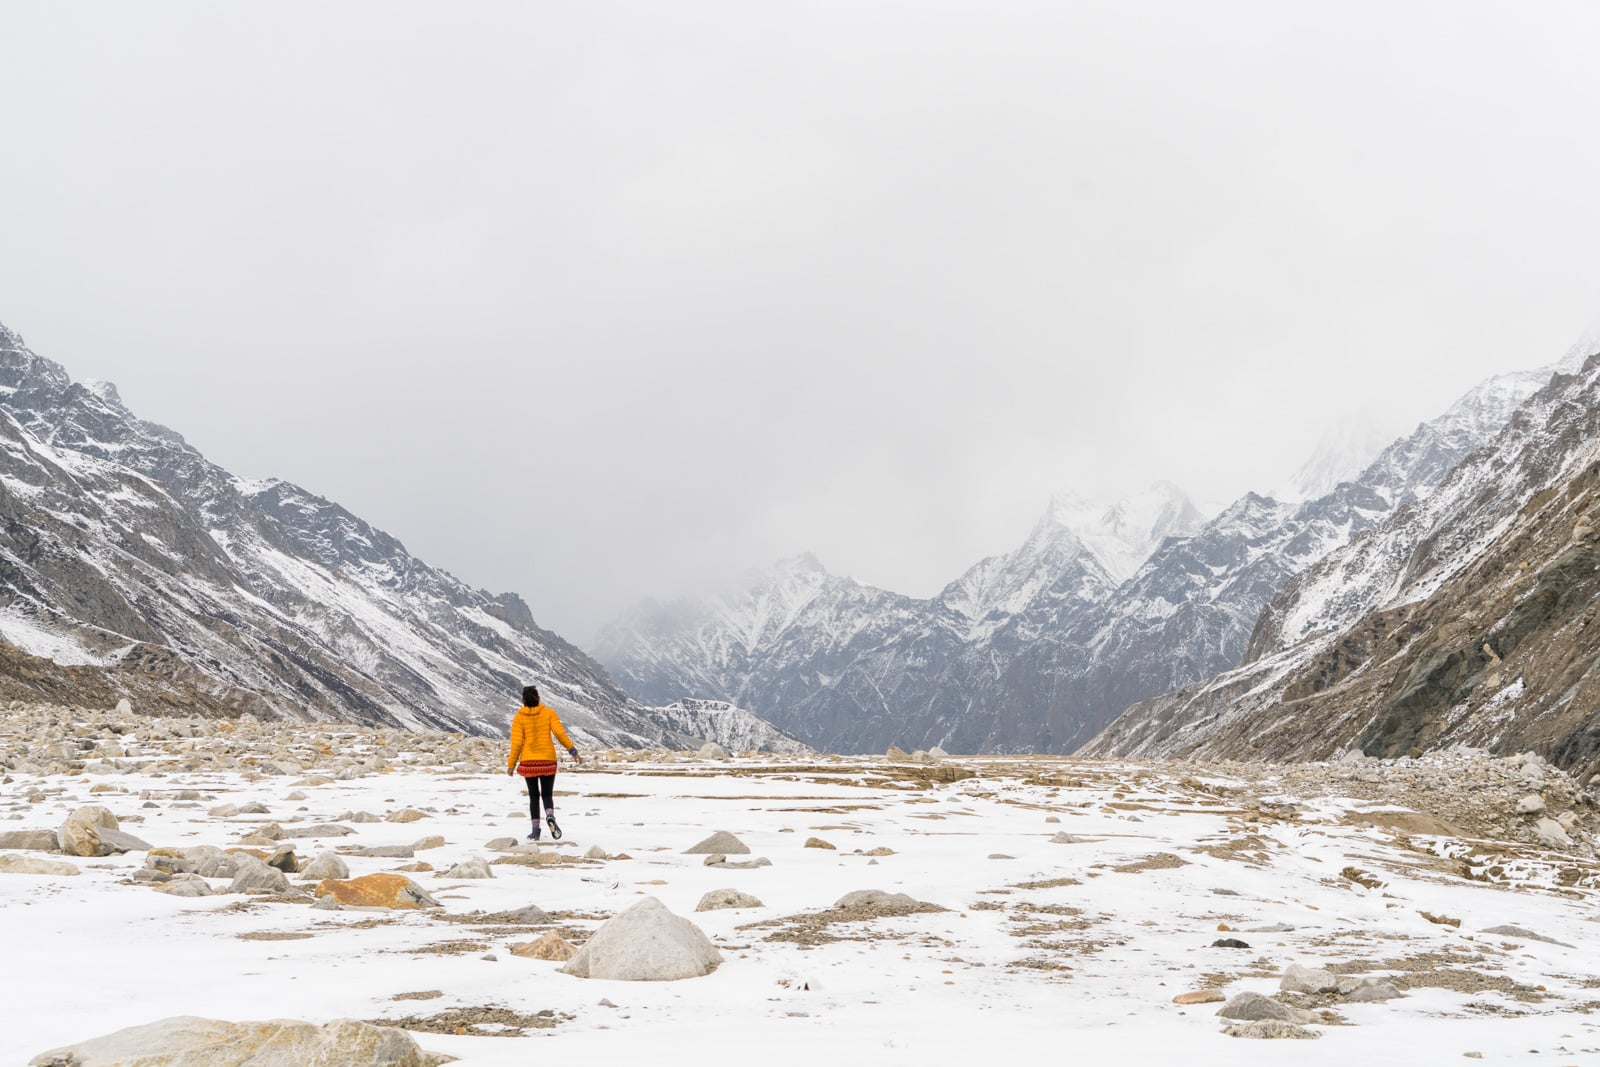 Guide to trekking to the start of the Ganges River in Uttarakhand, India - Flat boulder field near Gomukh - Lost With Purpose travel blog